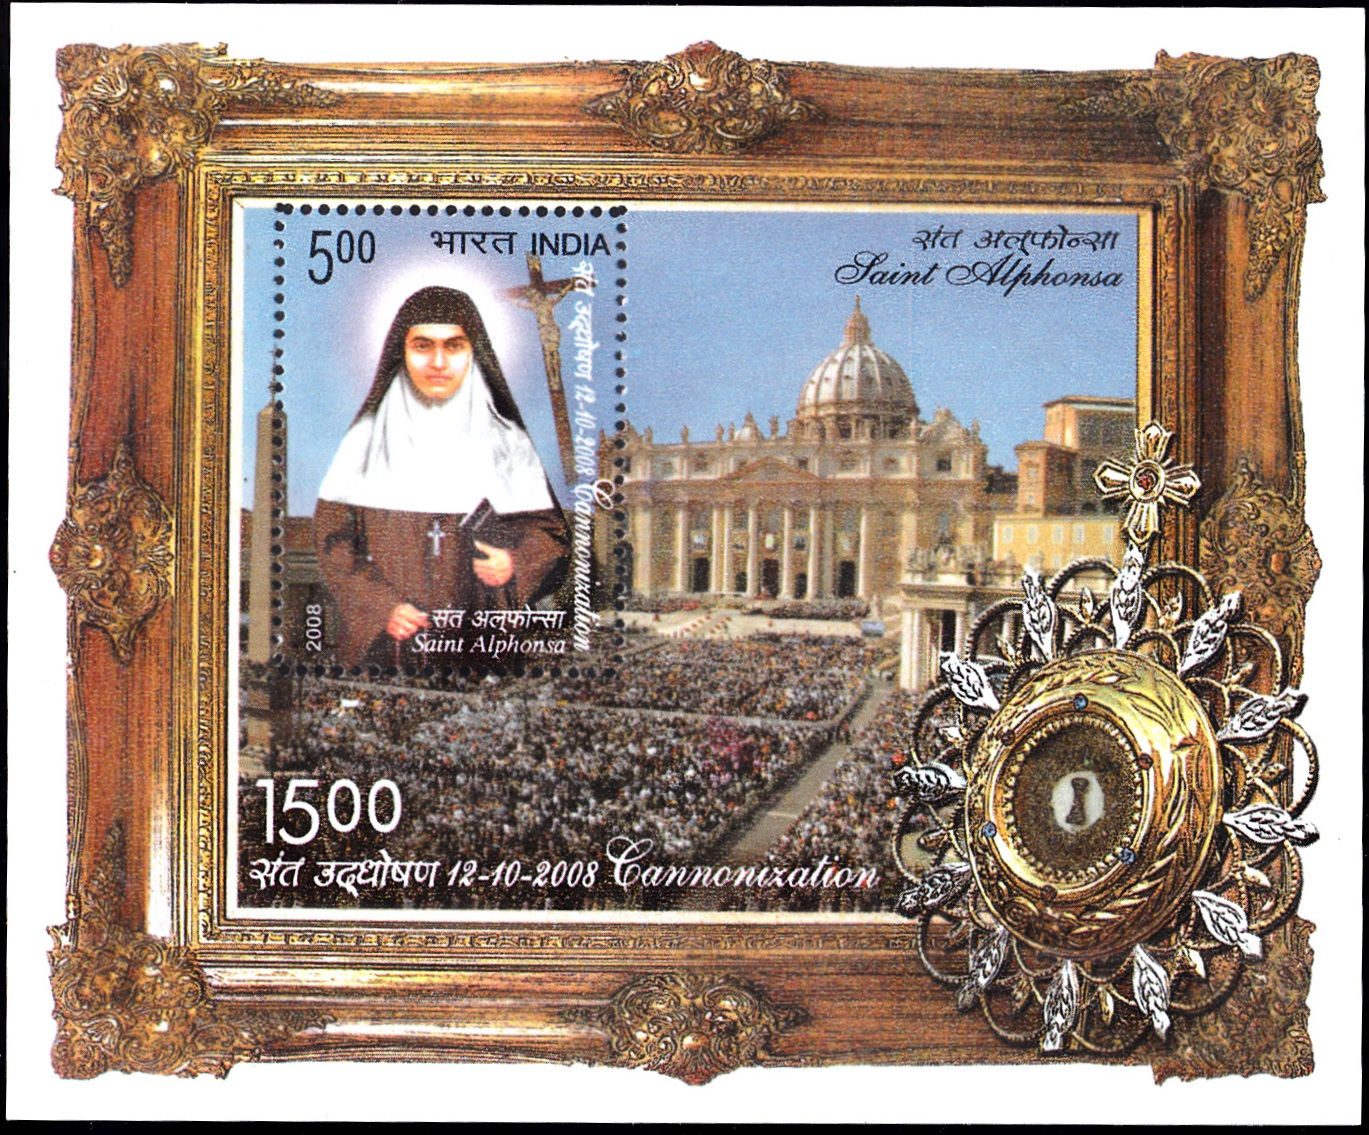 2406 Canonization of Saint Alphonsa [Miniature Sheet]